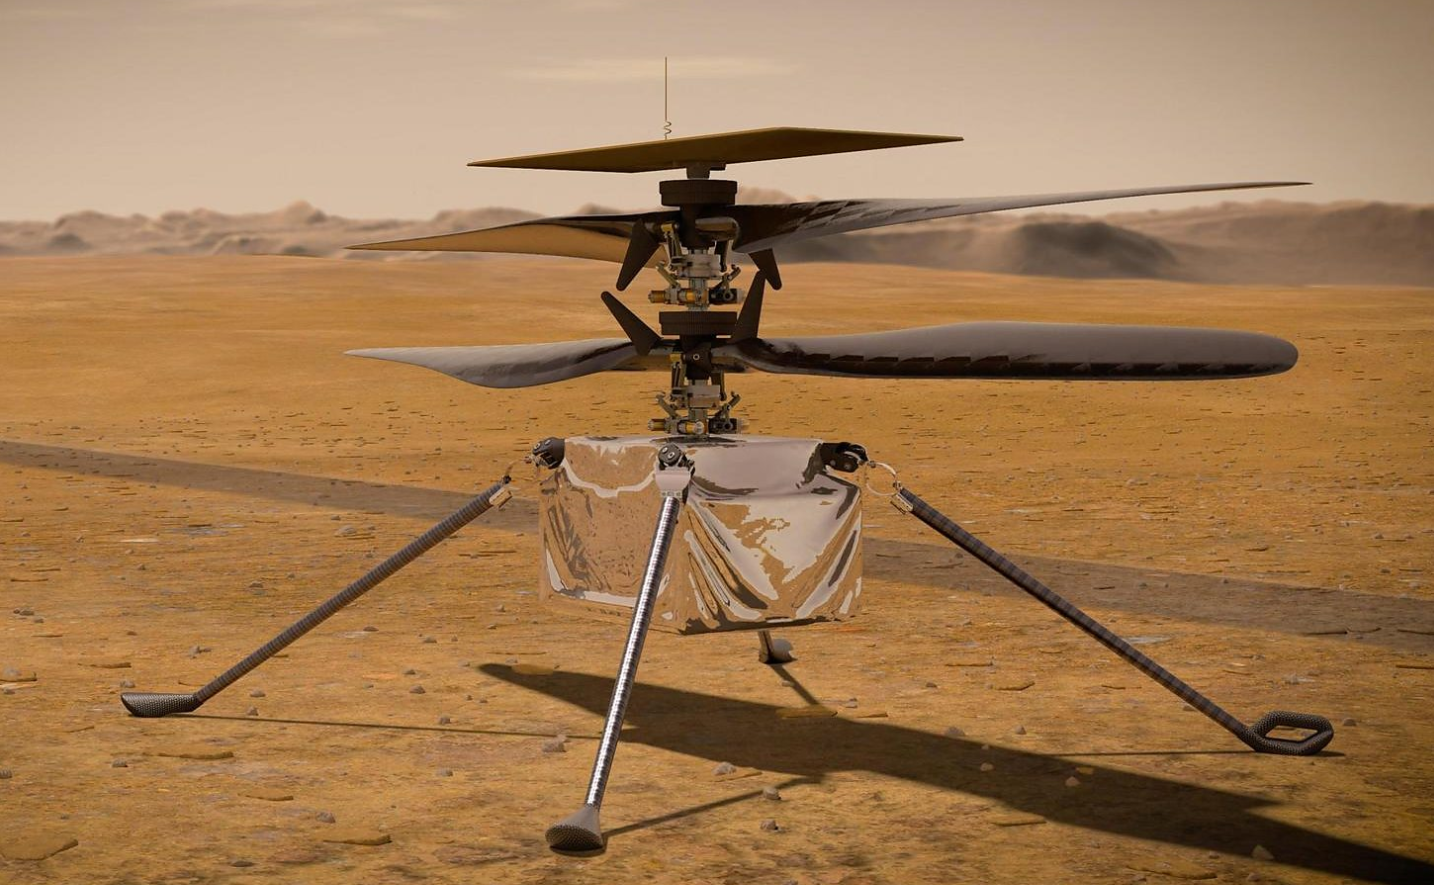 Helicopter set to be the first aircraft to another planet